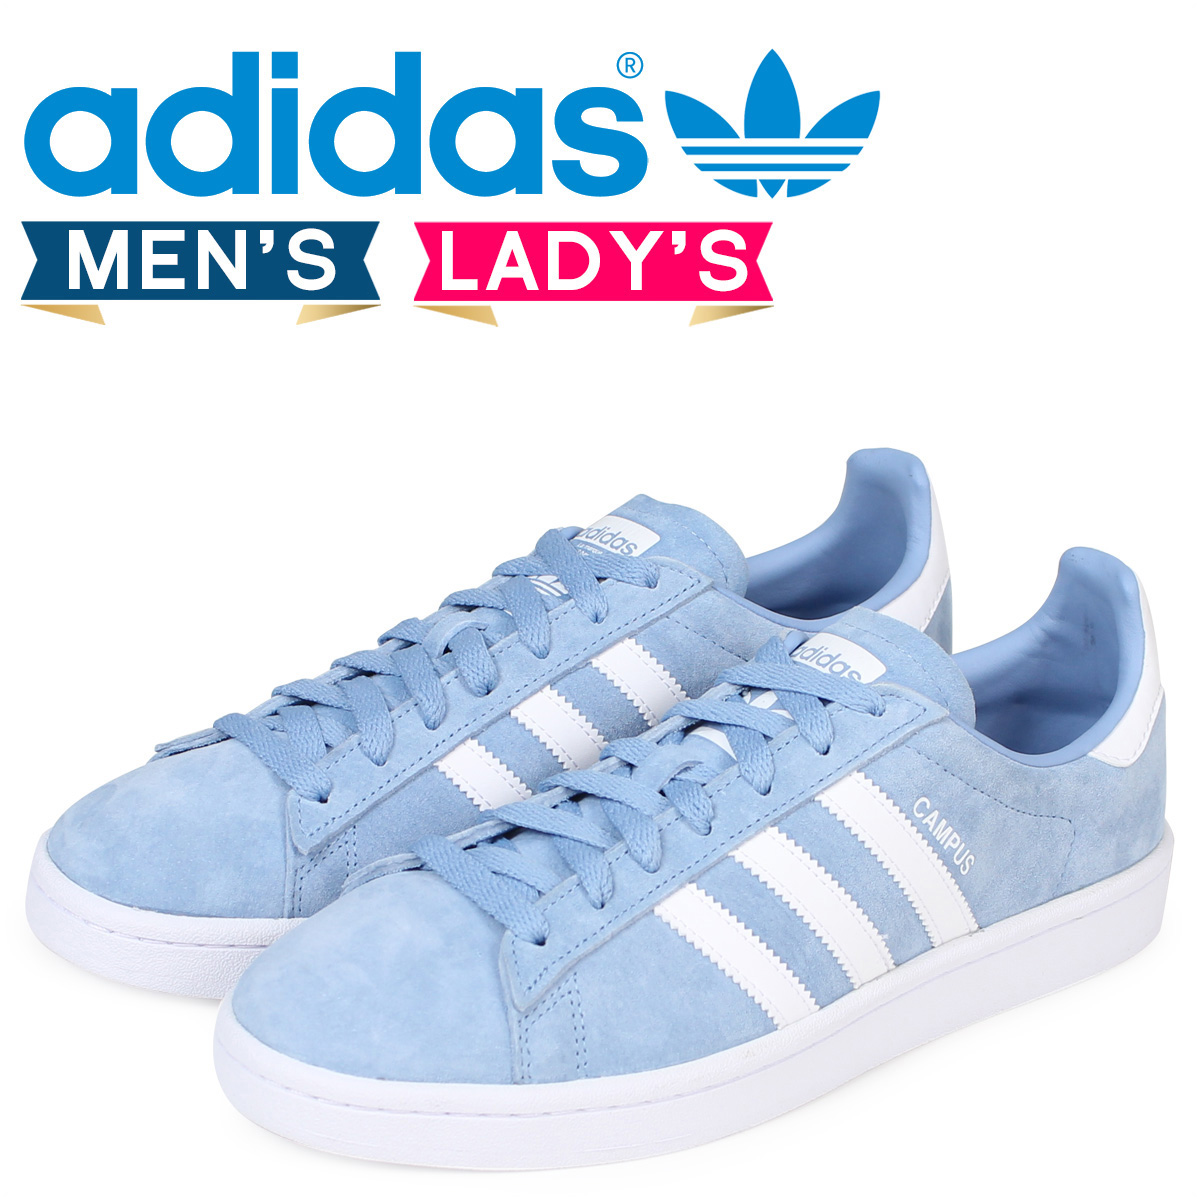 adidas campus Adidas originals sneakers CAMPUS men gap Dis DB0983 shoes  blue [load planned Shinnyu load in reservation product 12/26 containing]